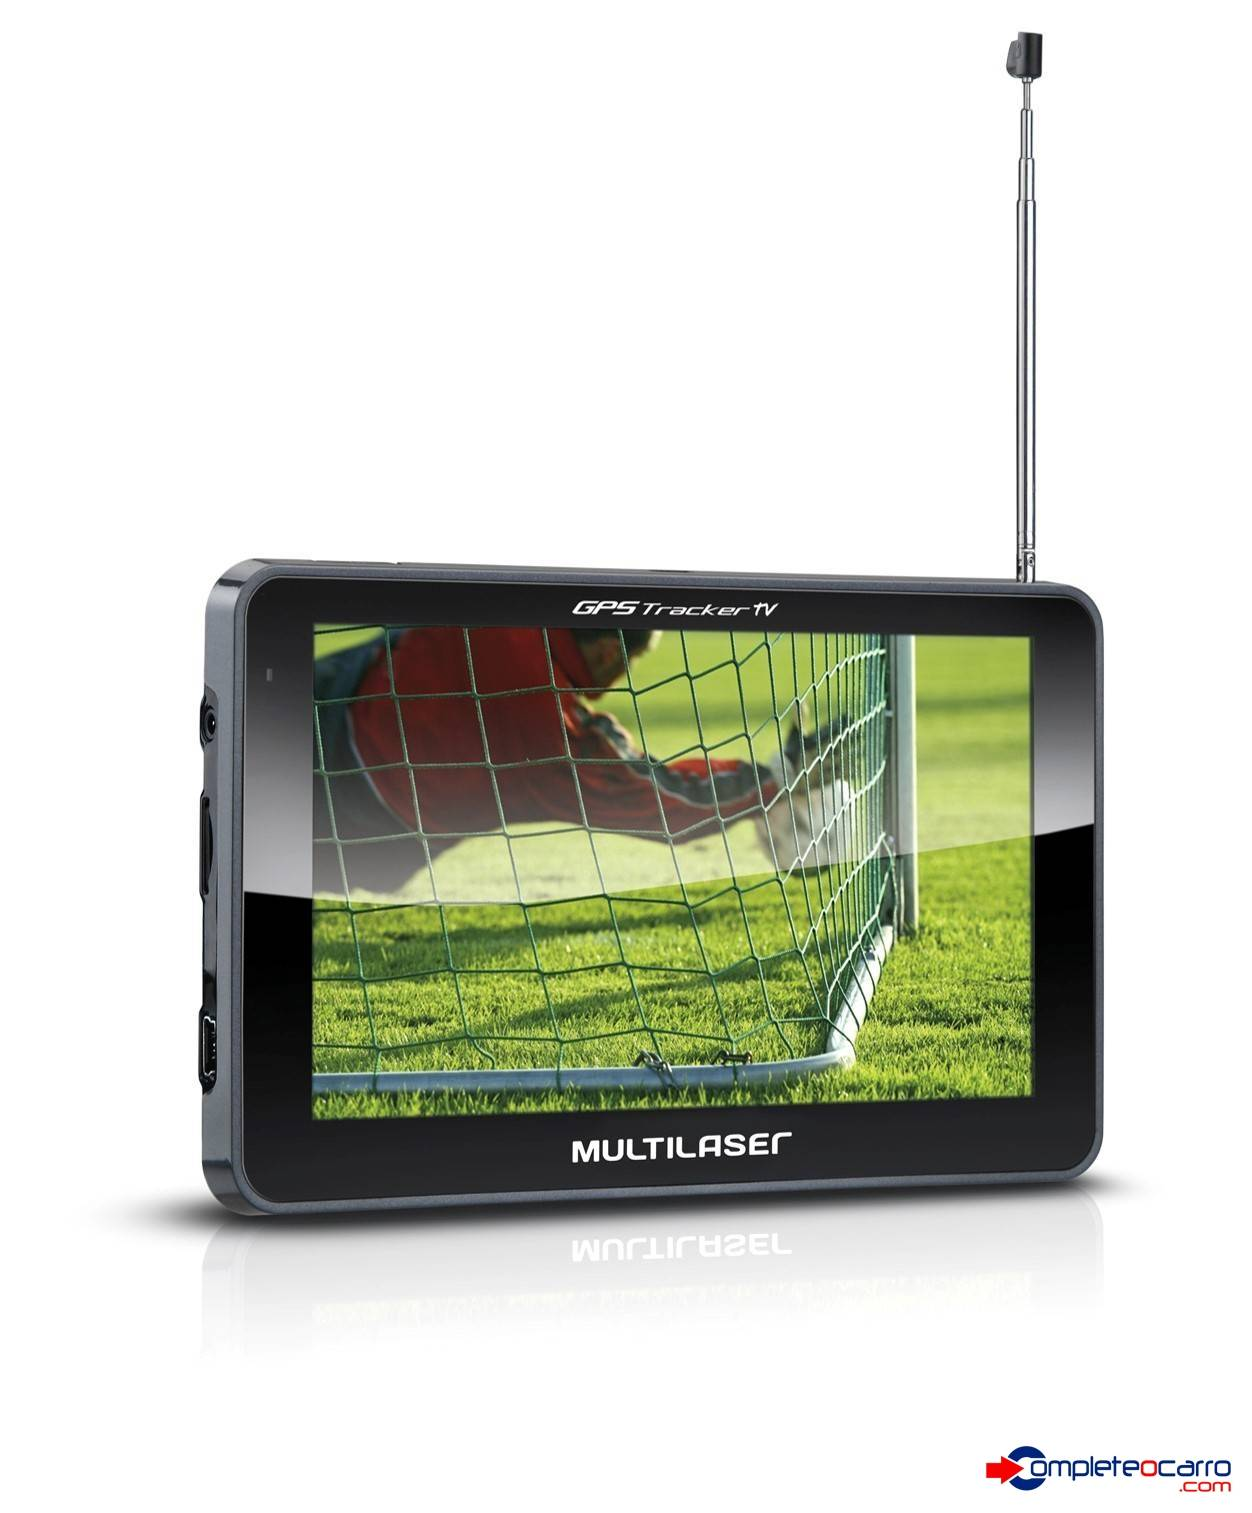 Navegador GPS Multilaser 5' C/ TV GP036 - Tracker III